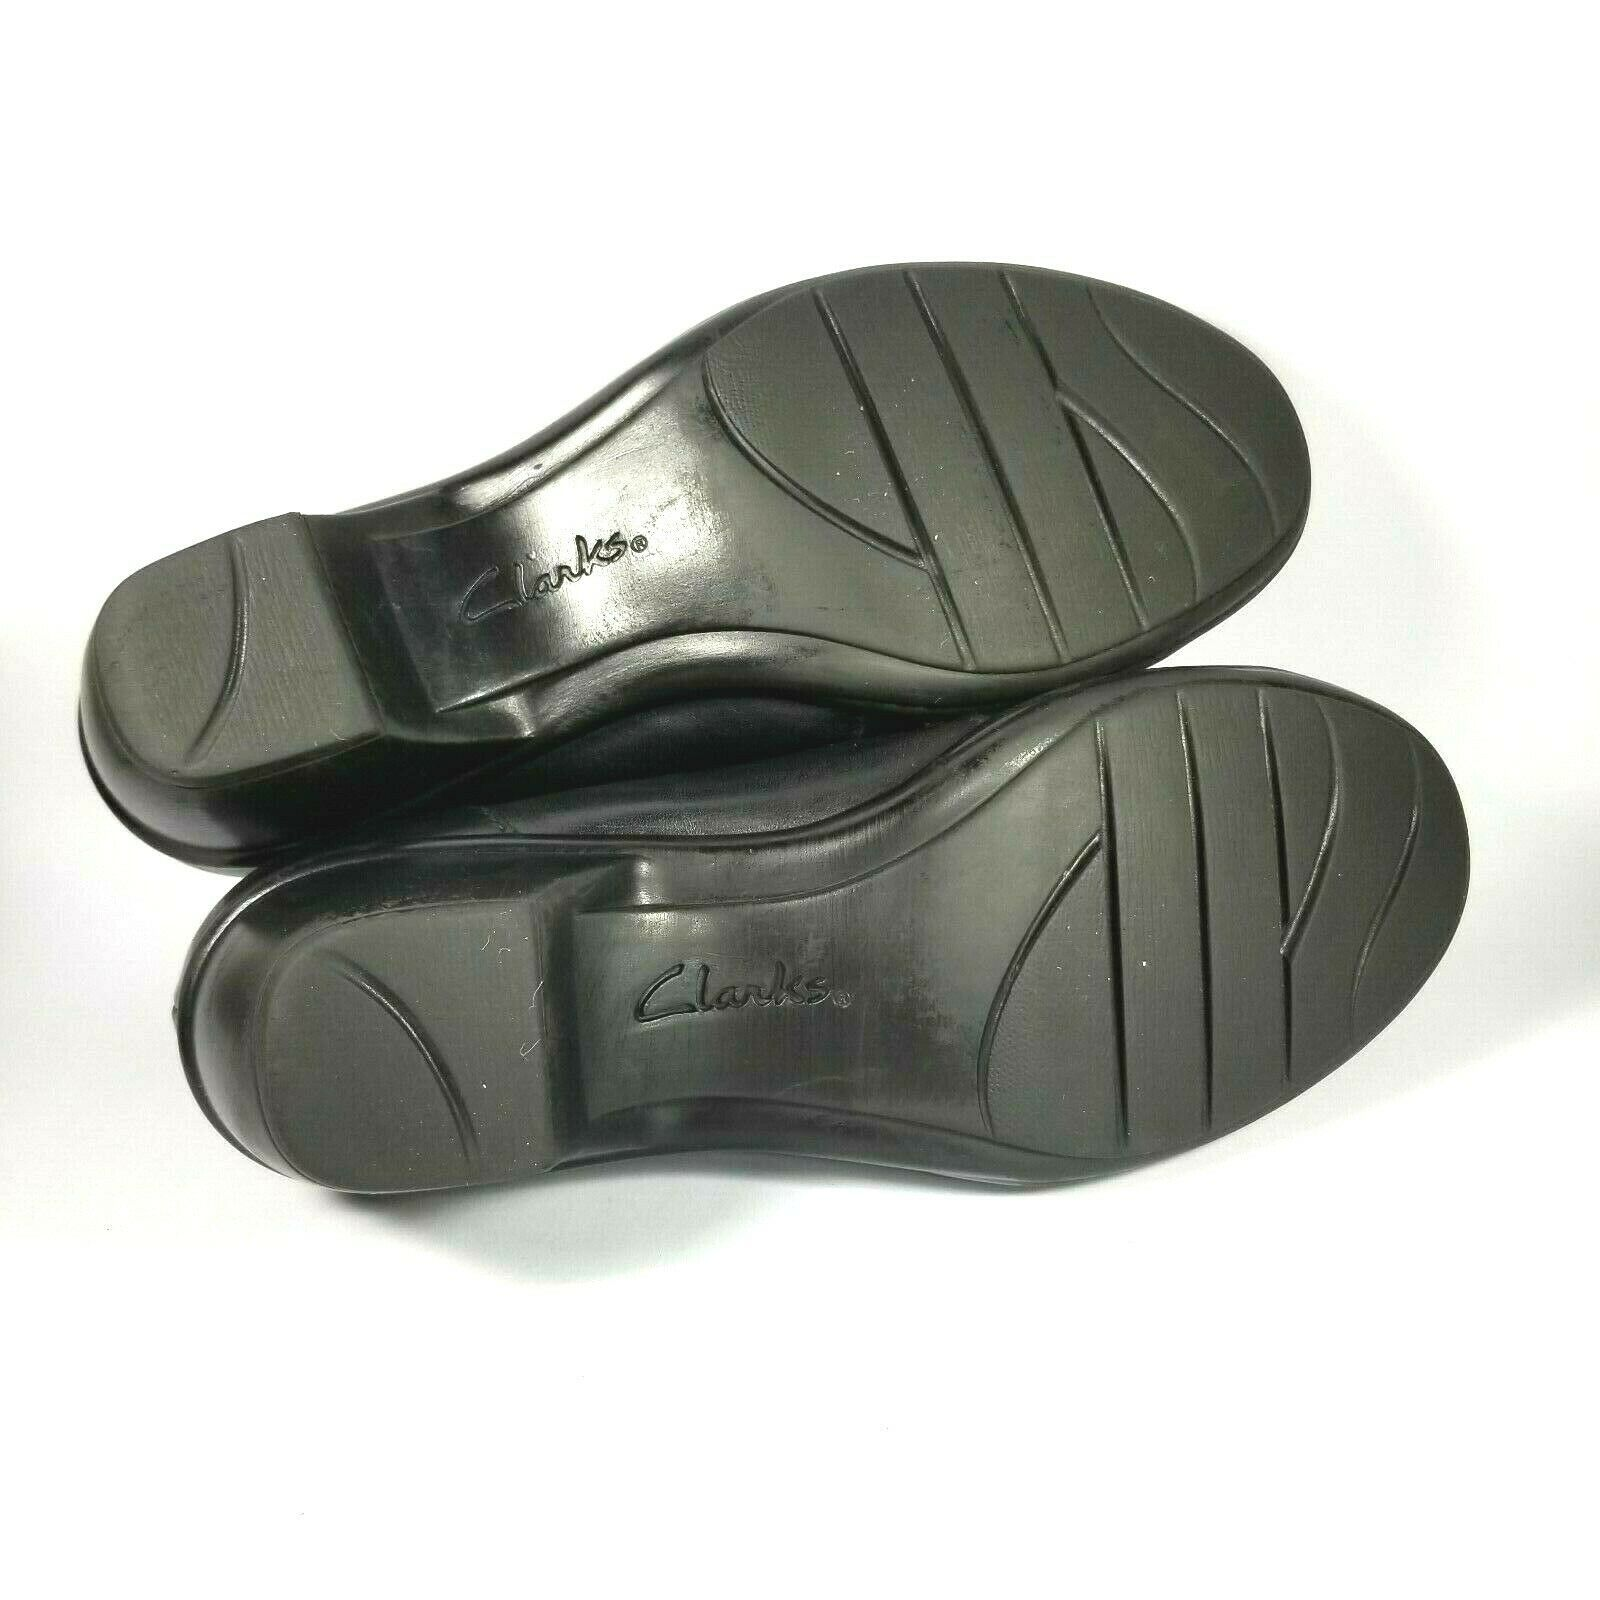 Clarks Bendables 38476 Womens Shoes Black Leather Heeled Slip on Size 7M